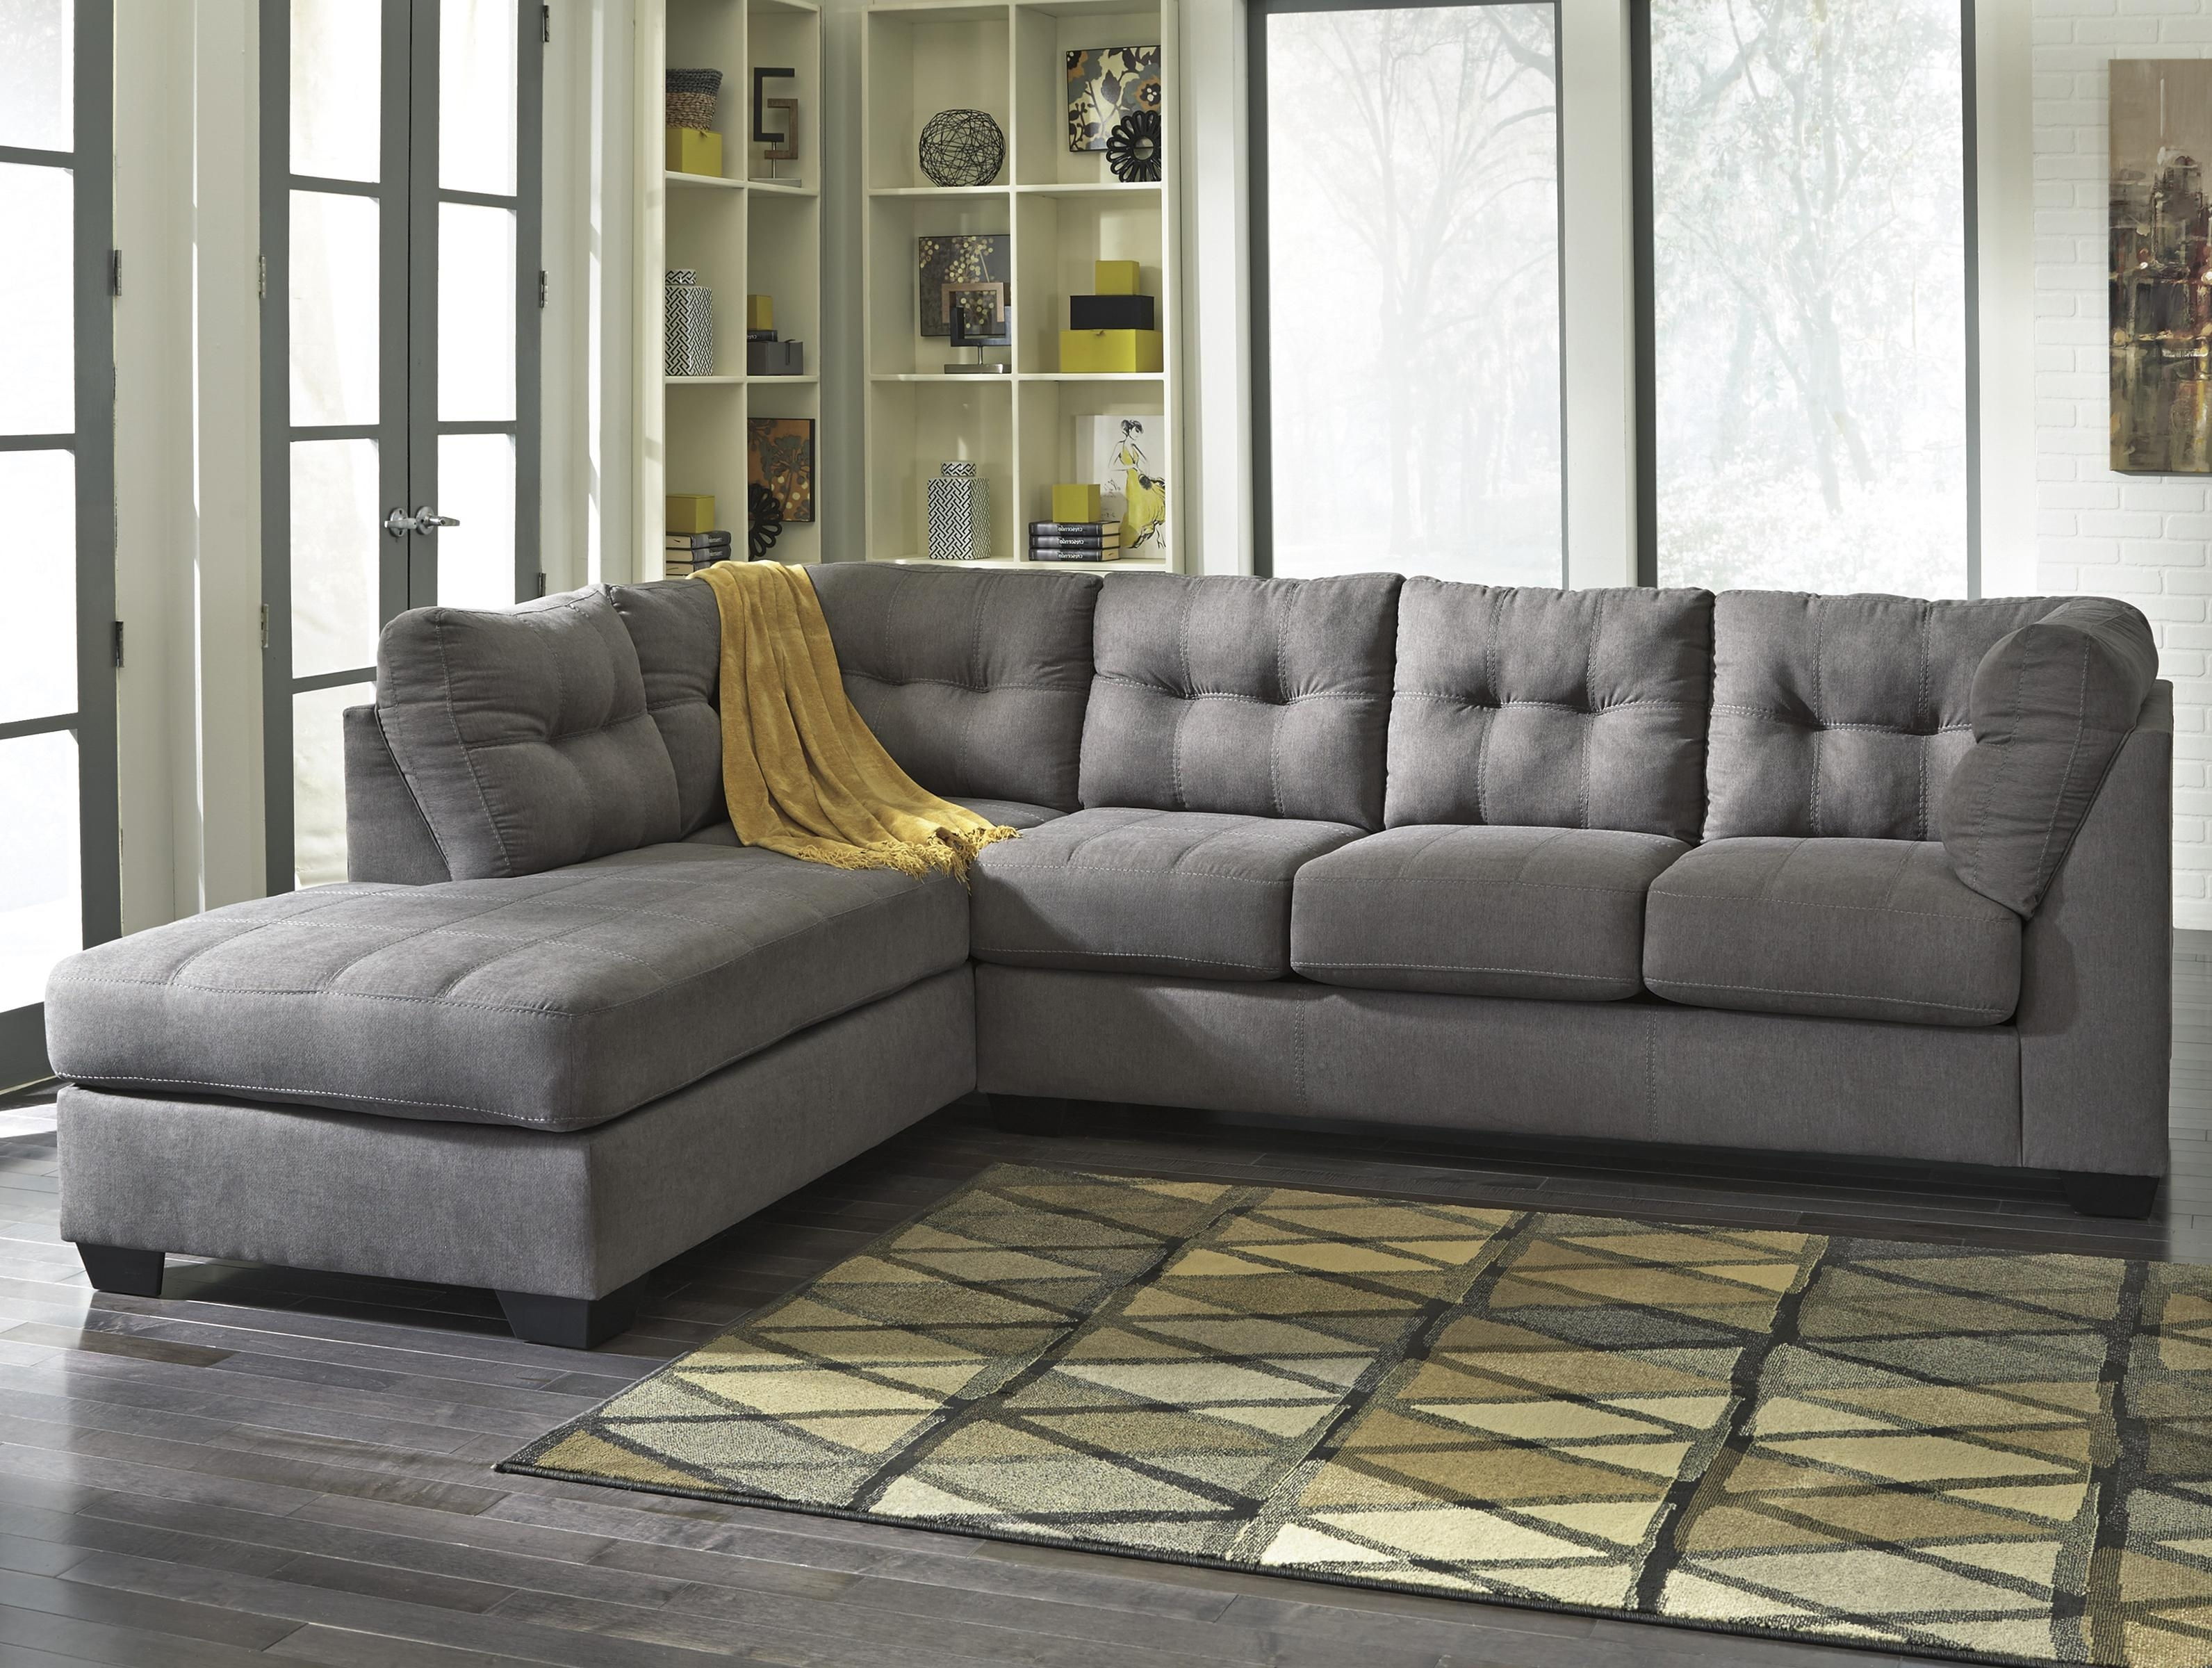 Choosing 2 Piece Sectional Sofa – Elites Home Decor With Regard To Delano 2 Piece Sectionals With Laf Oversized Chaise (Image 9 of 25)